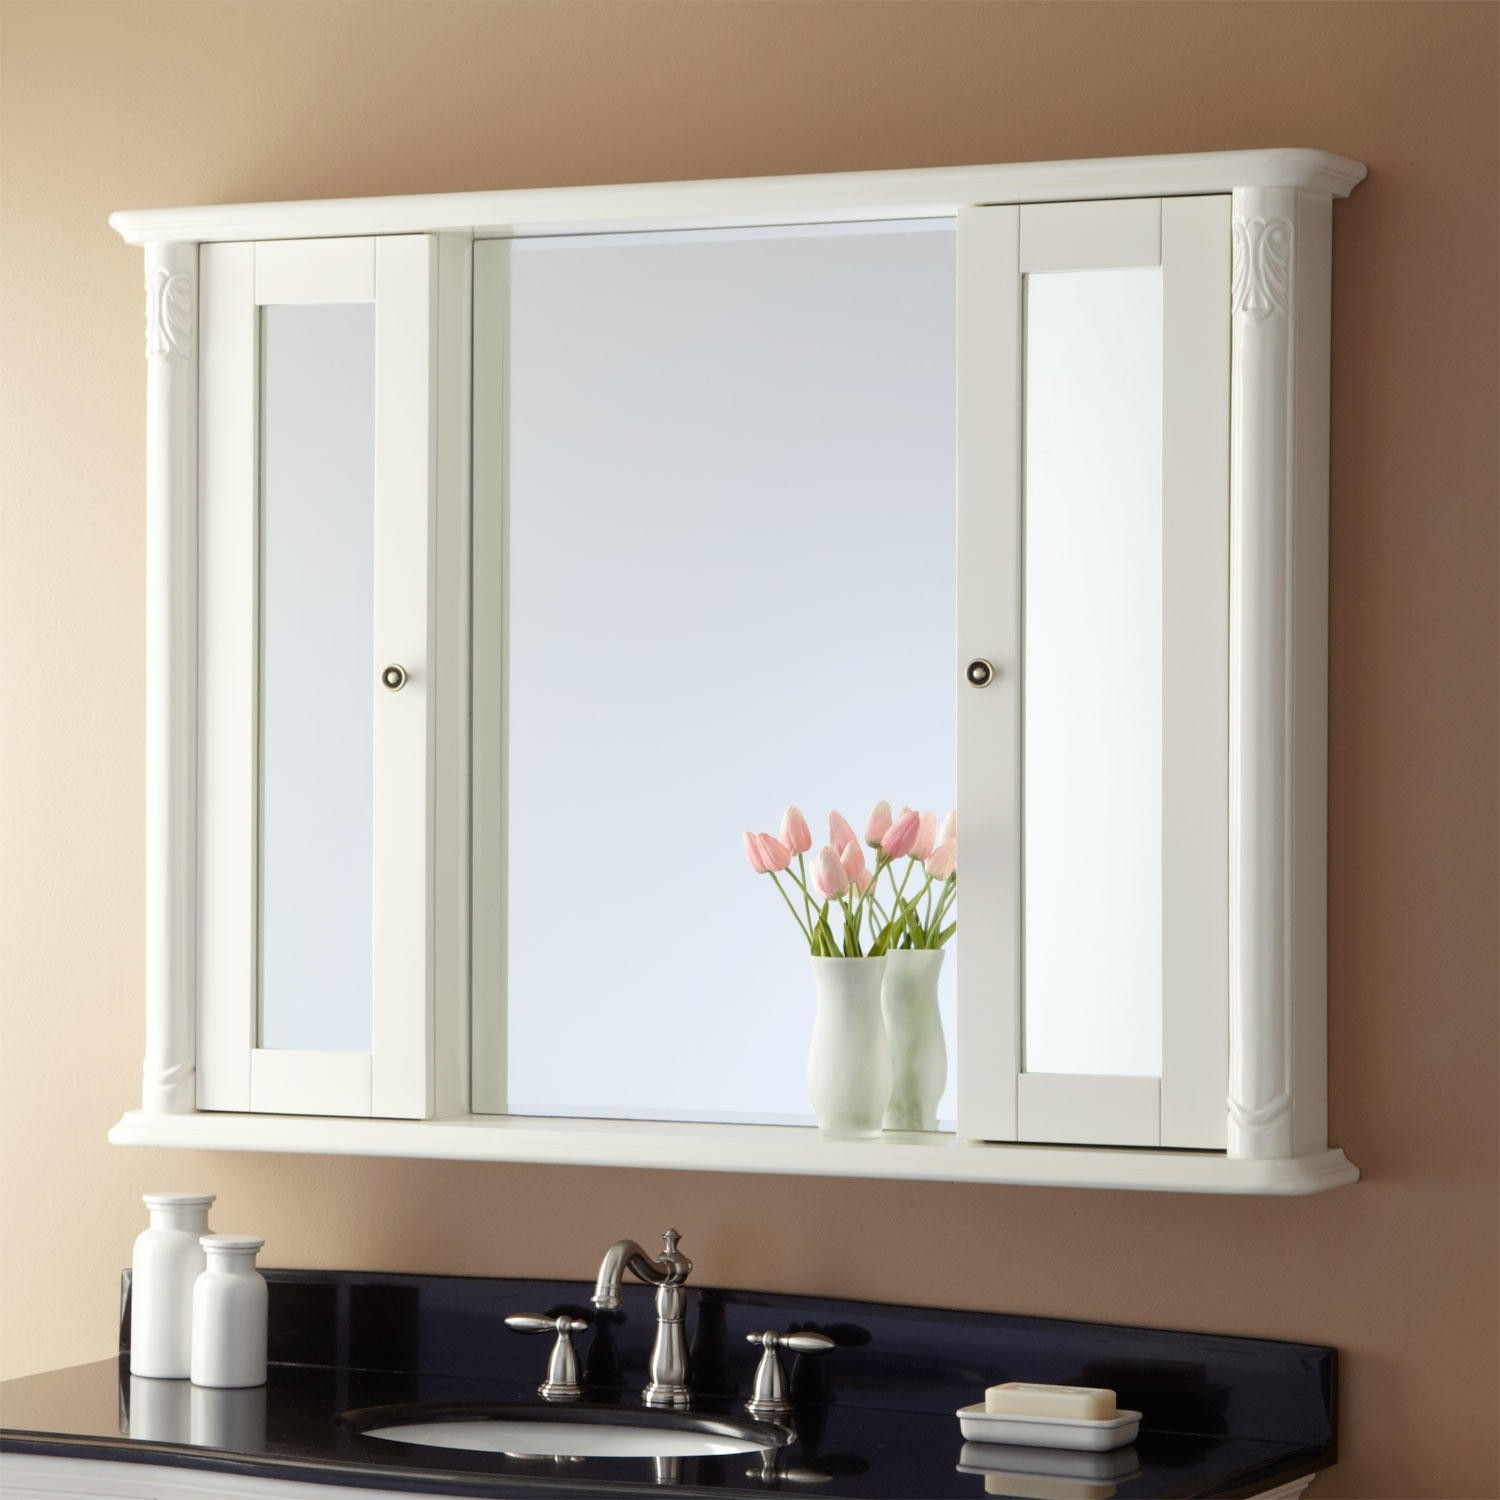 Permalink to Bathroom Medicine Cabinets Mirrors